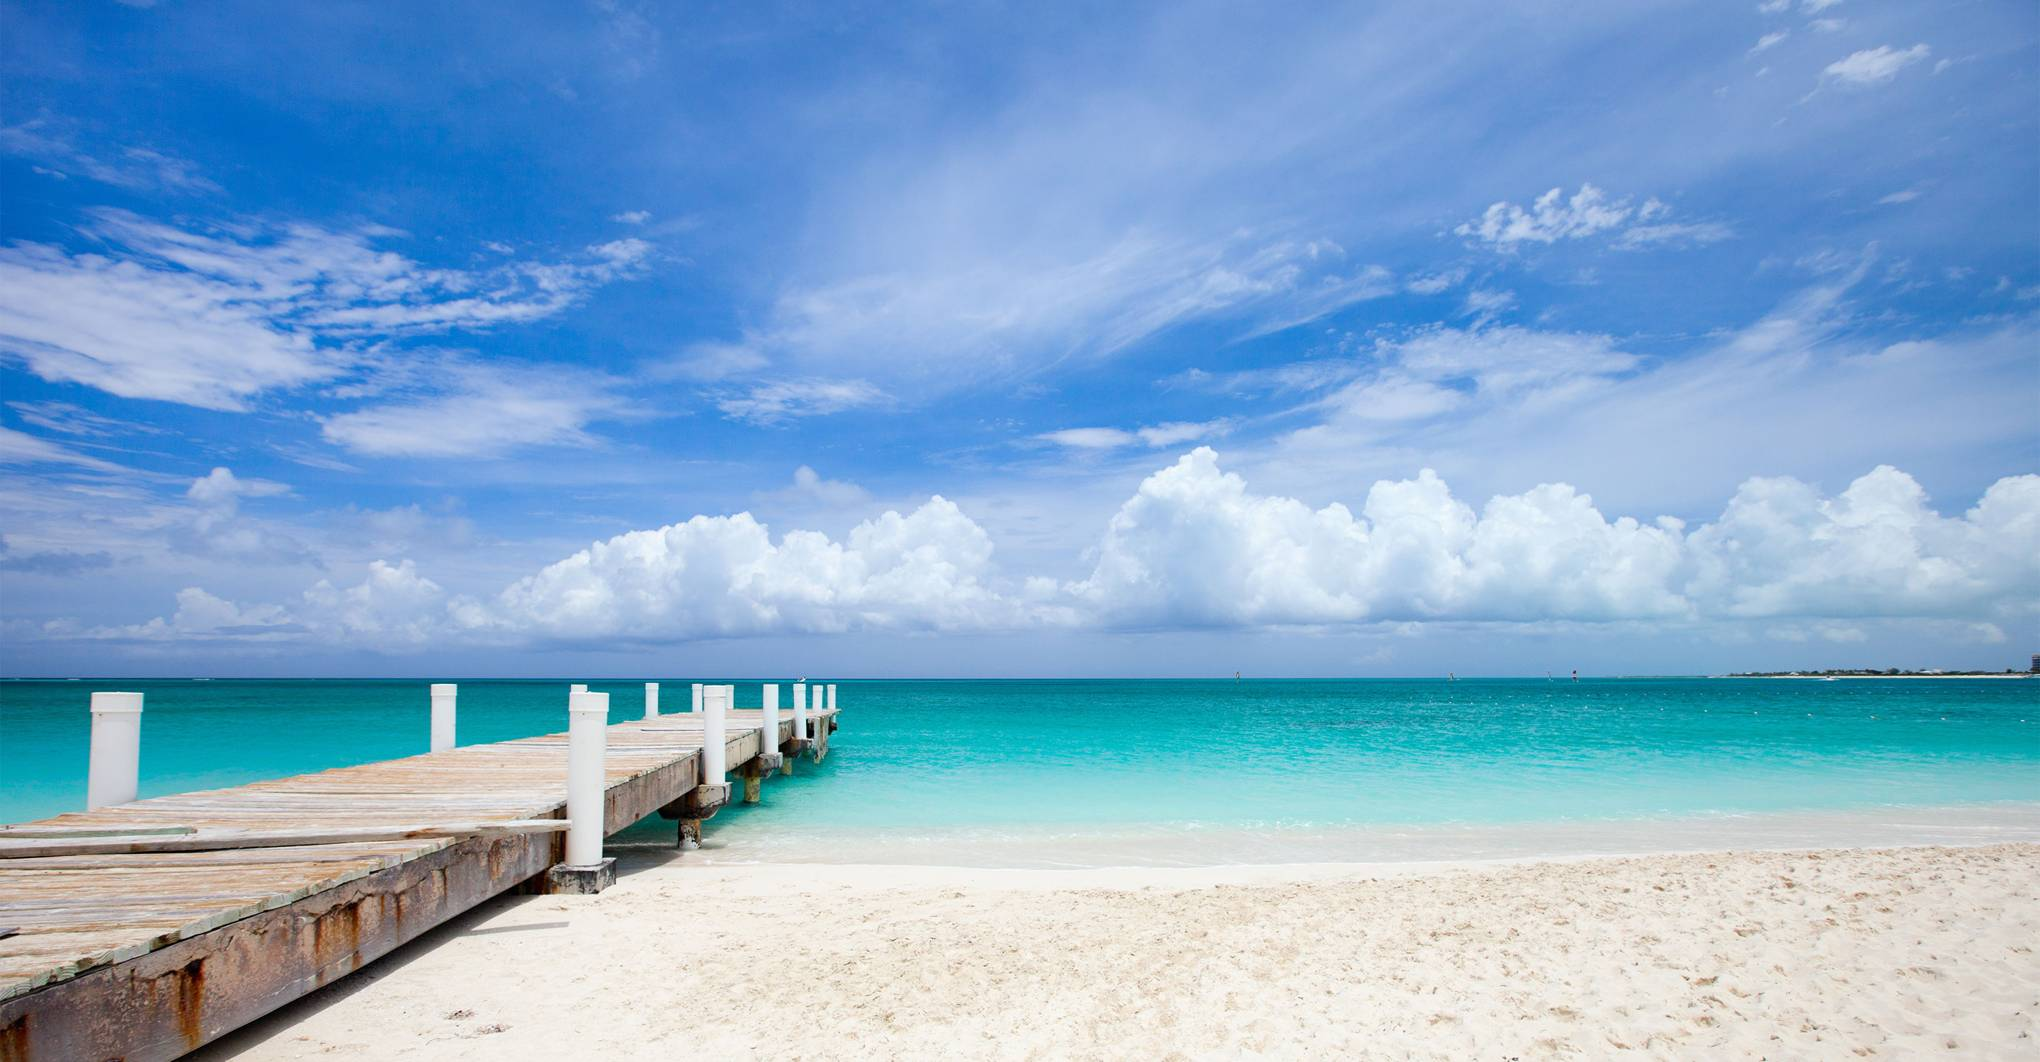 The 10 Best Beaches in the Turks and Caicos